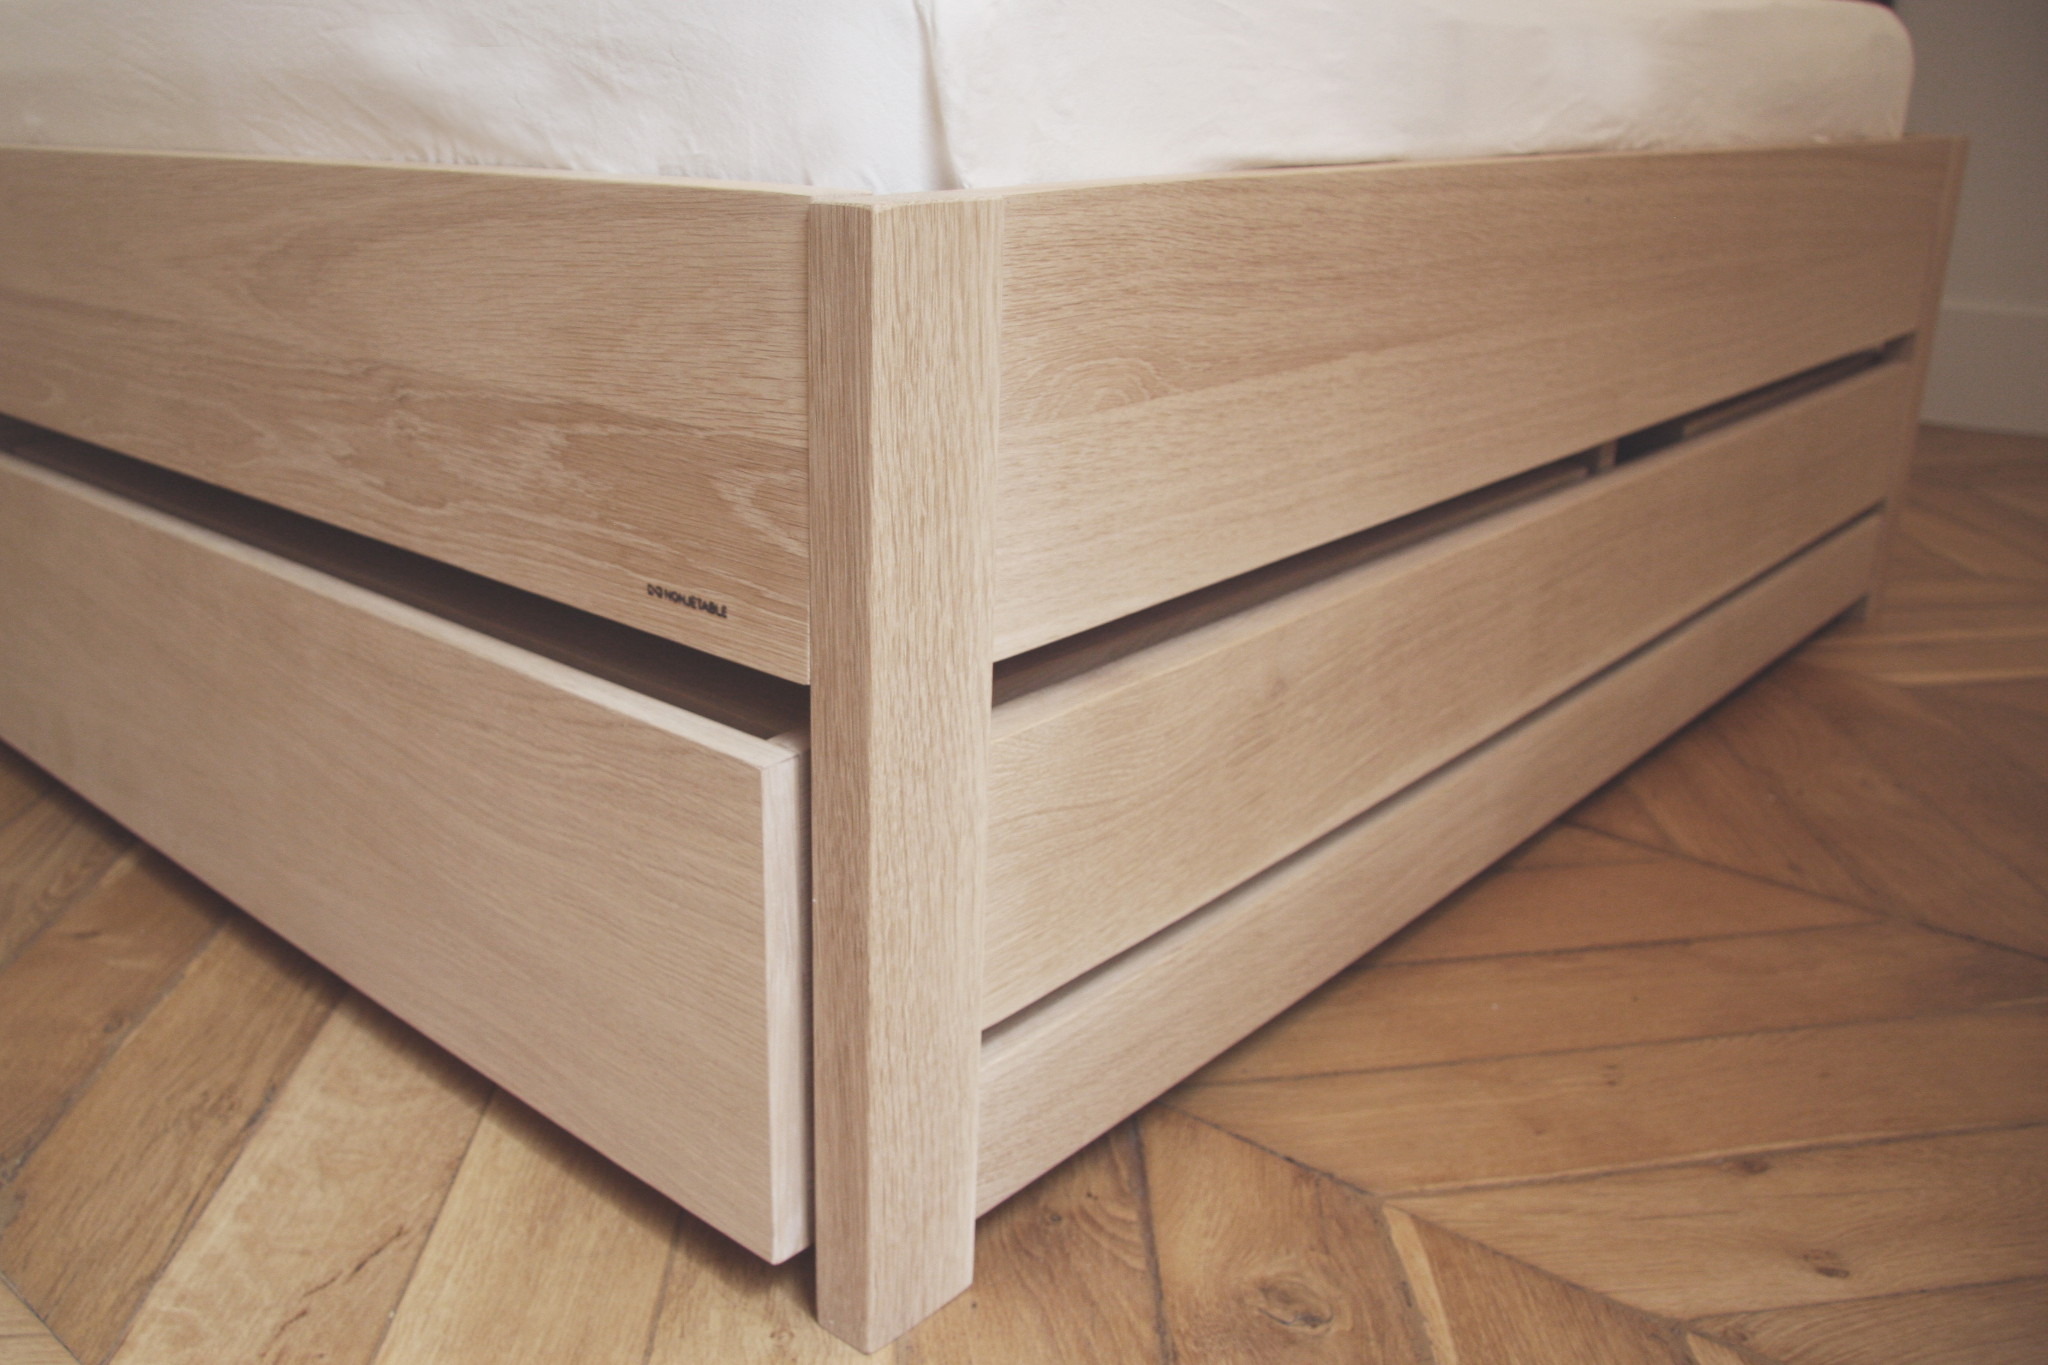 Nonjetable-Customised-Solid-Oak-Double-Bed-Lifetime-160x200-02